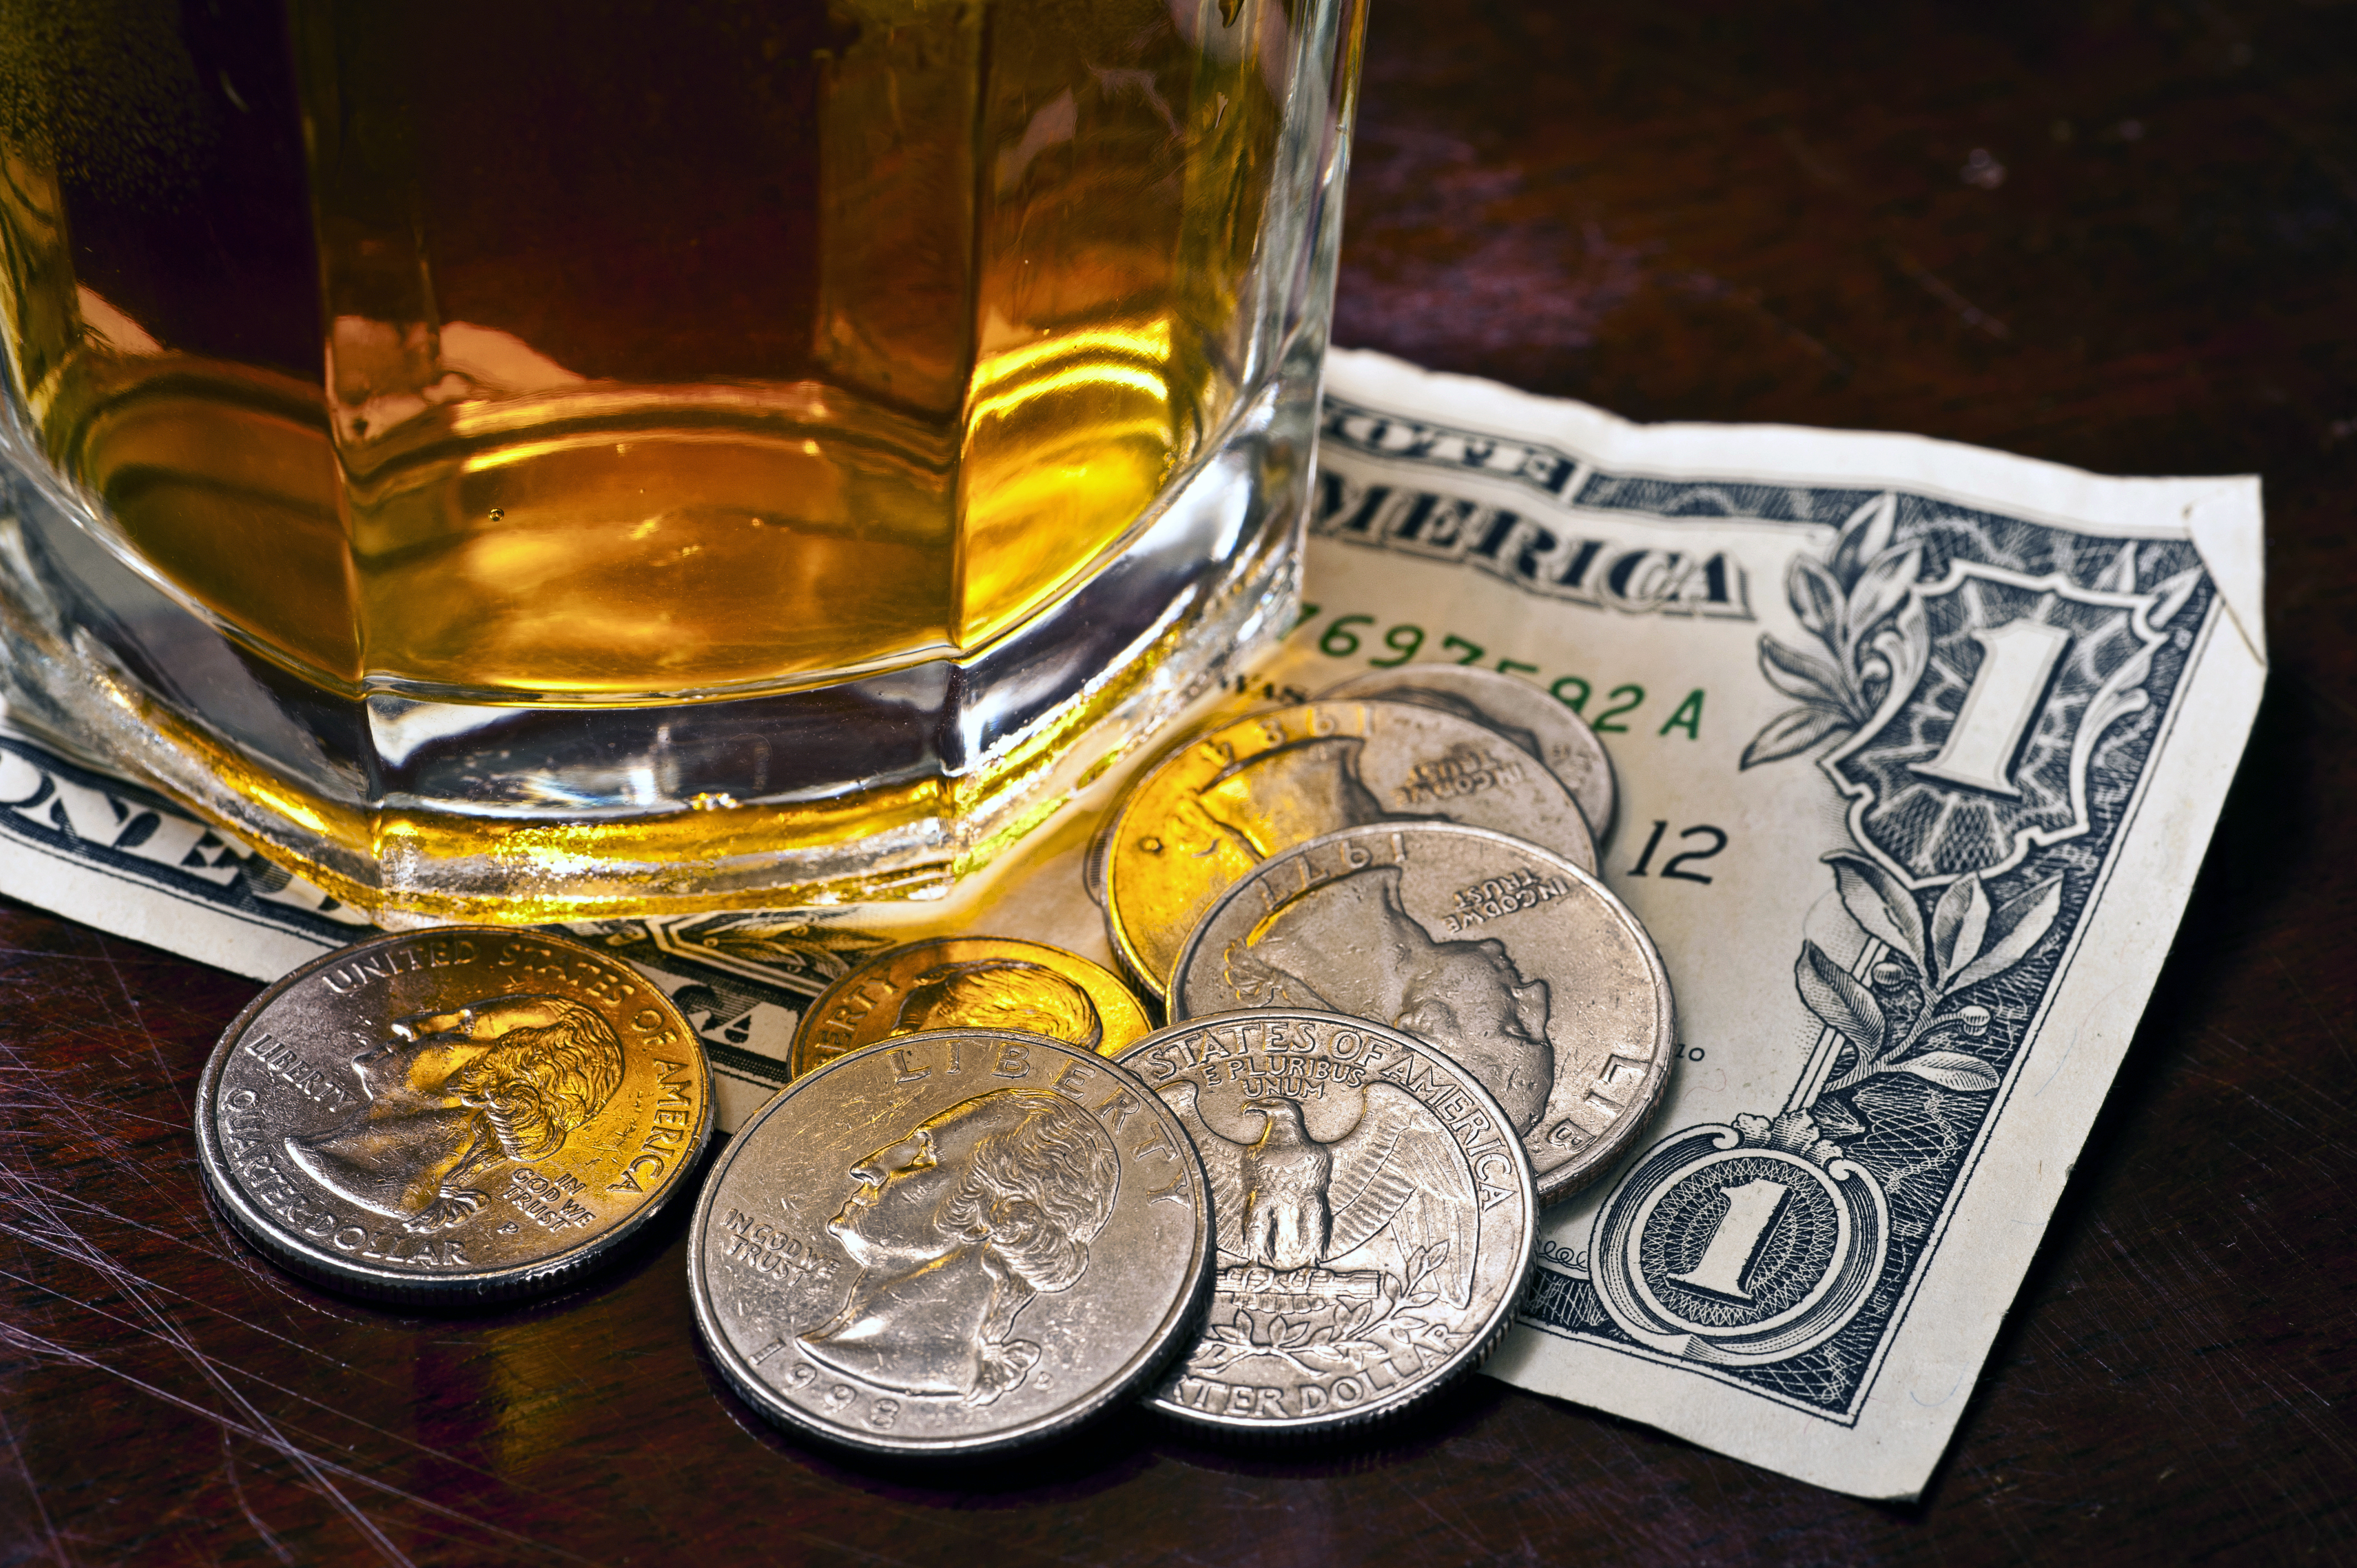 A glass of whiskey sits on top of a dollar bill and some quarters.